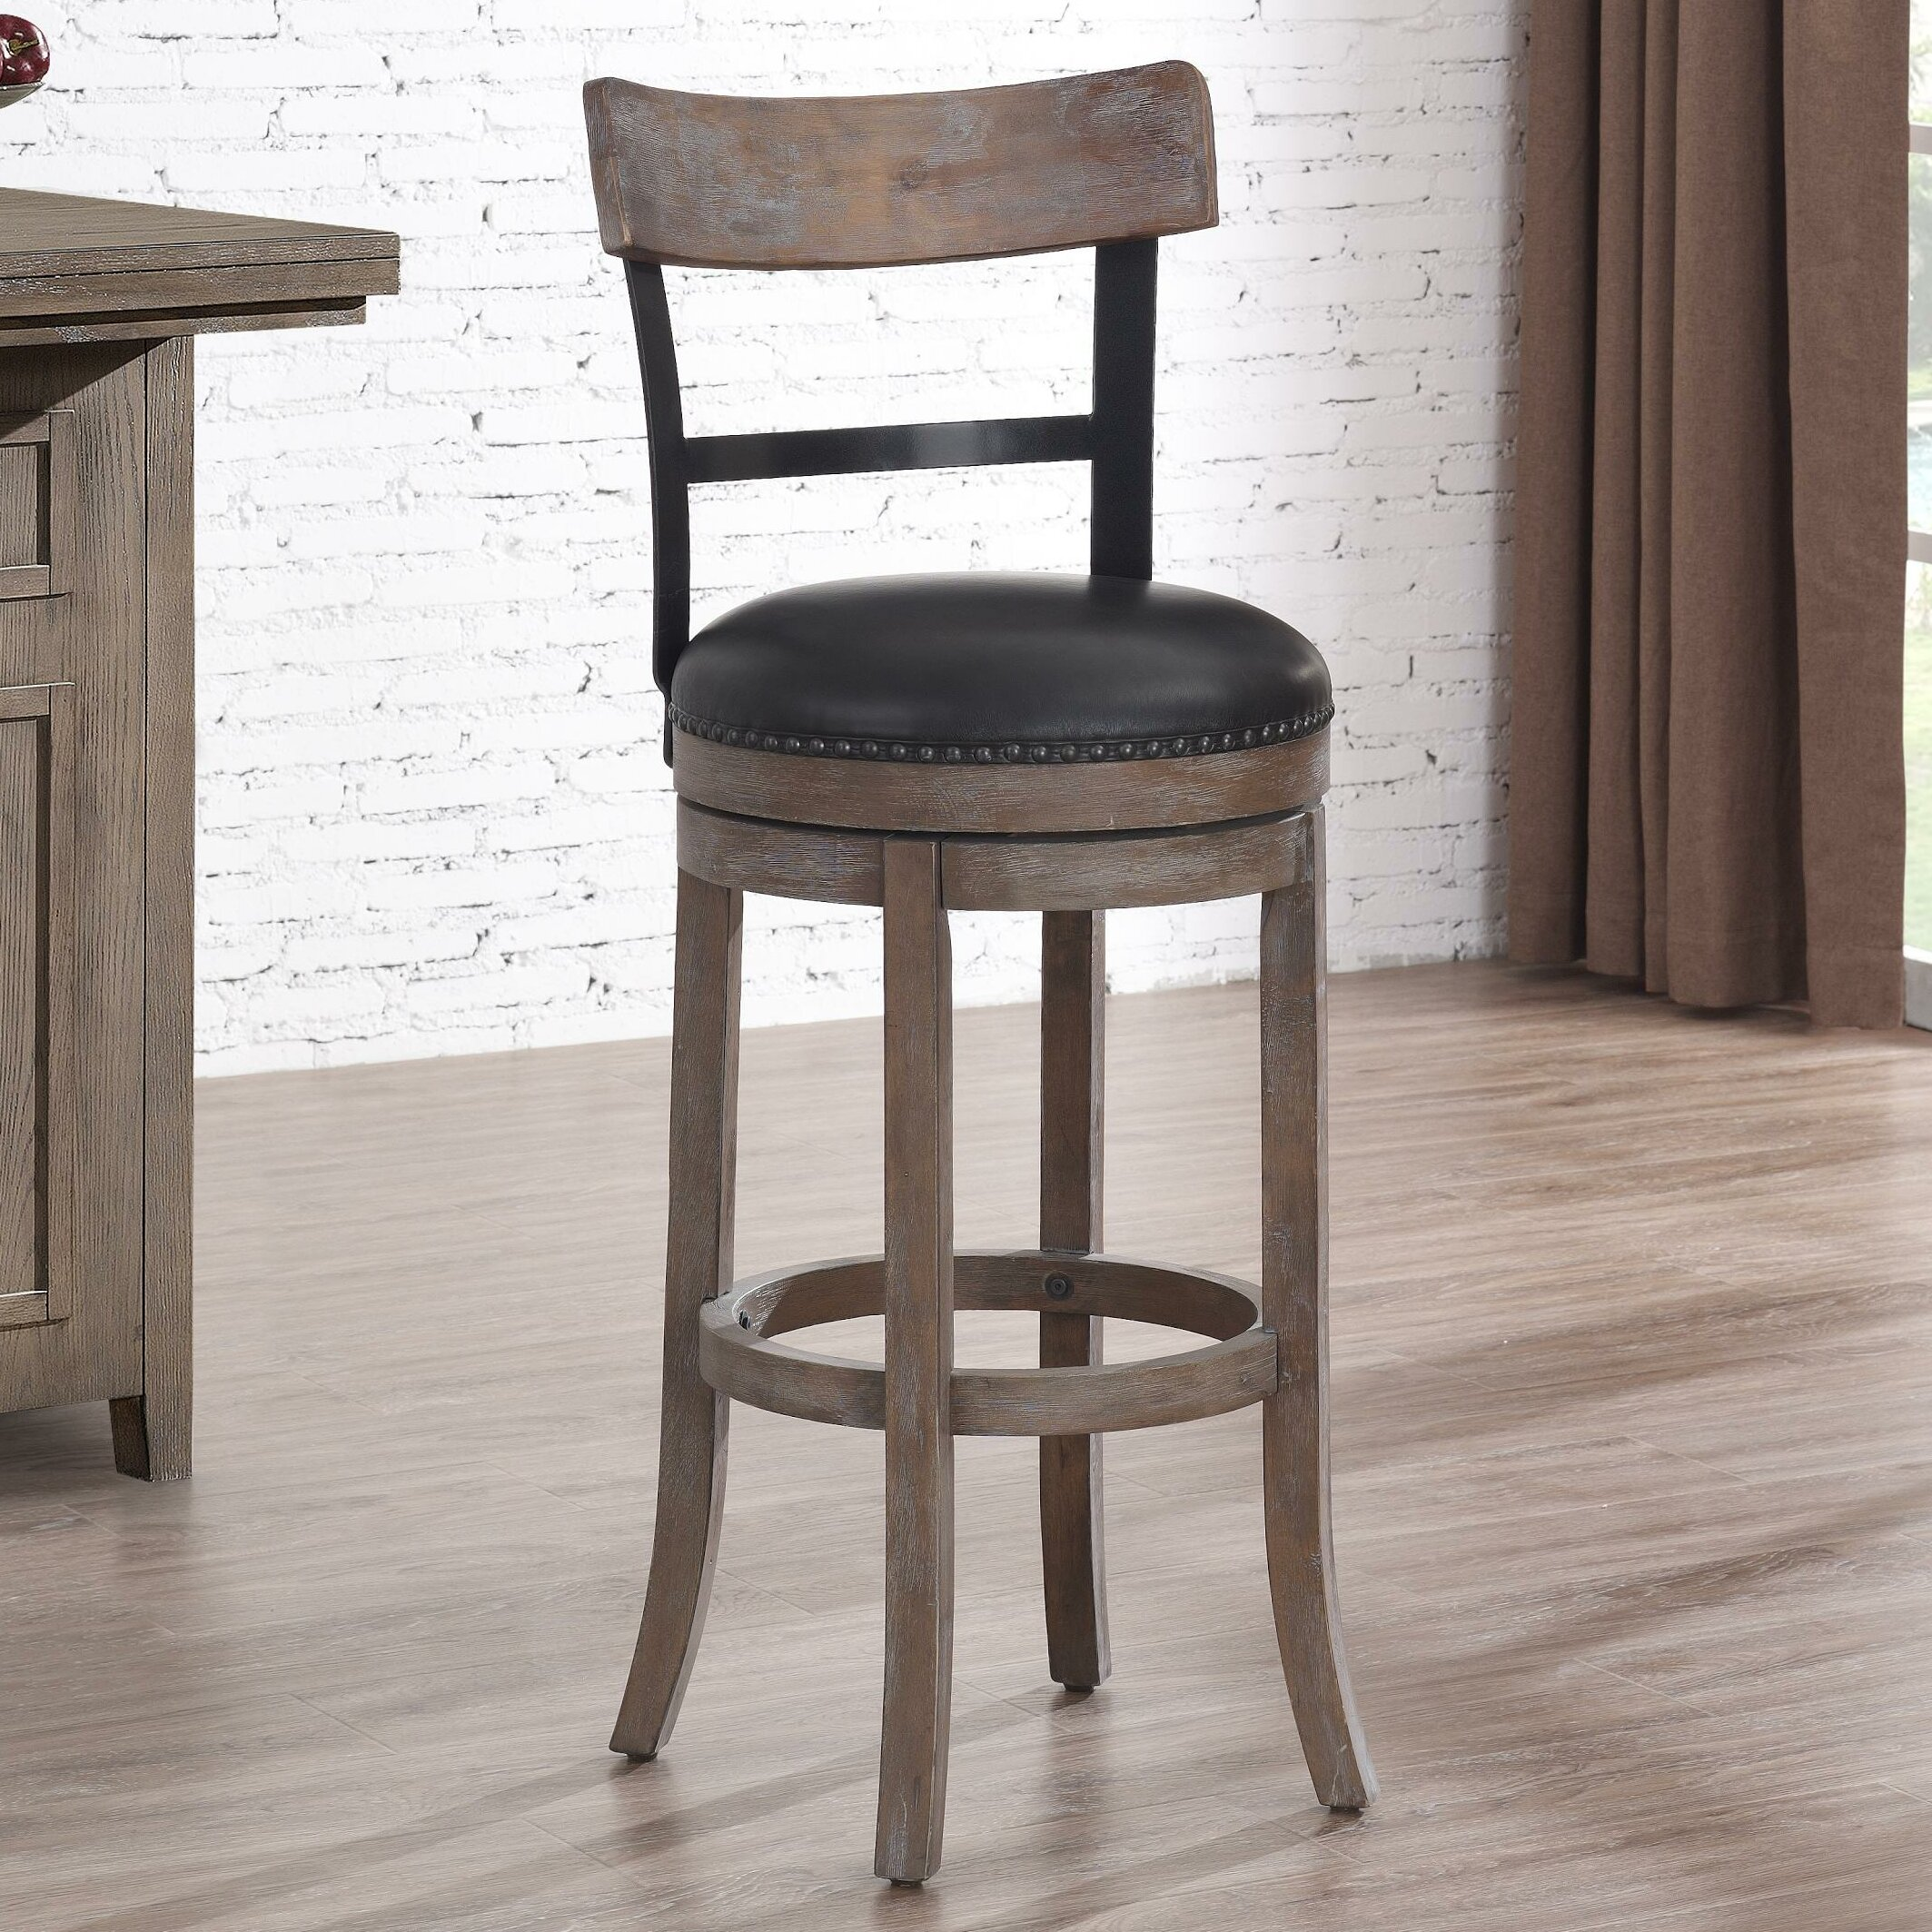 Darby Home Co Carondelet 34 Quot Swivel Tall Bar Stool With